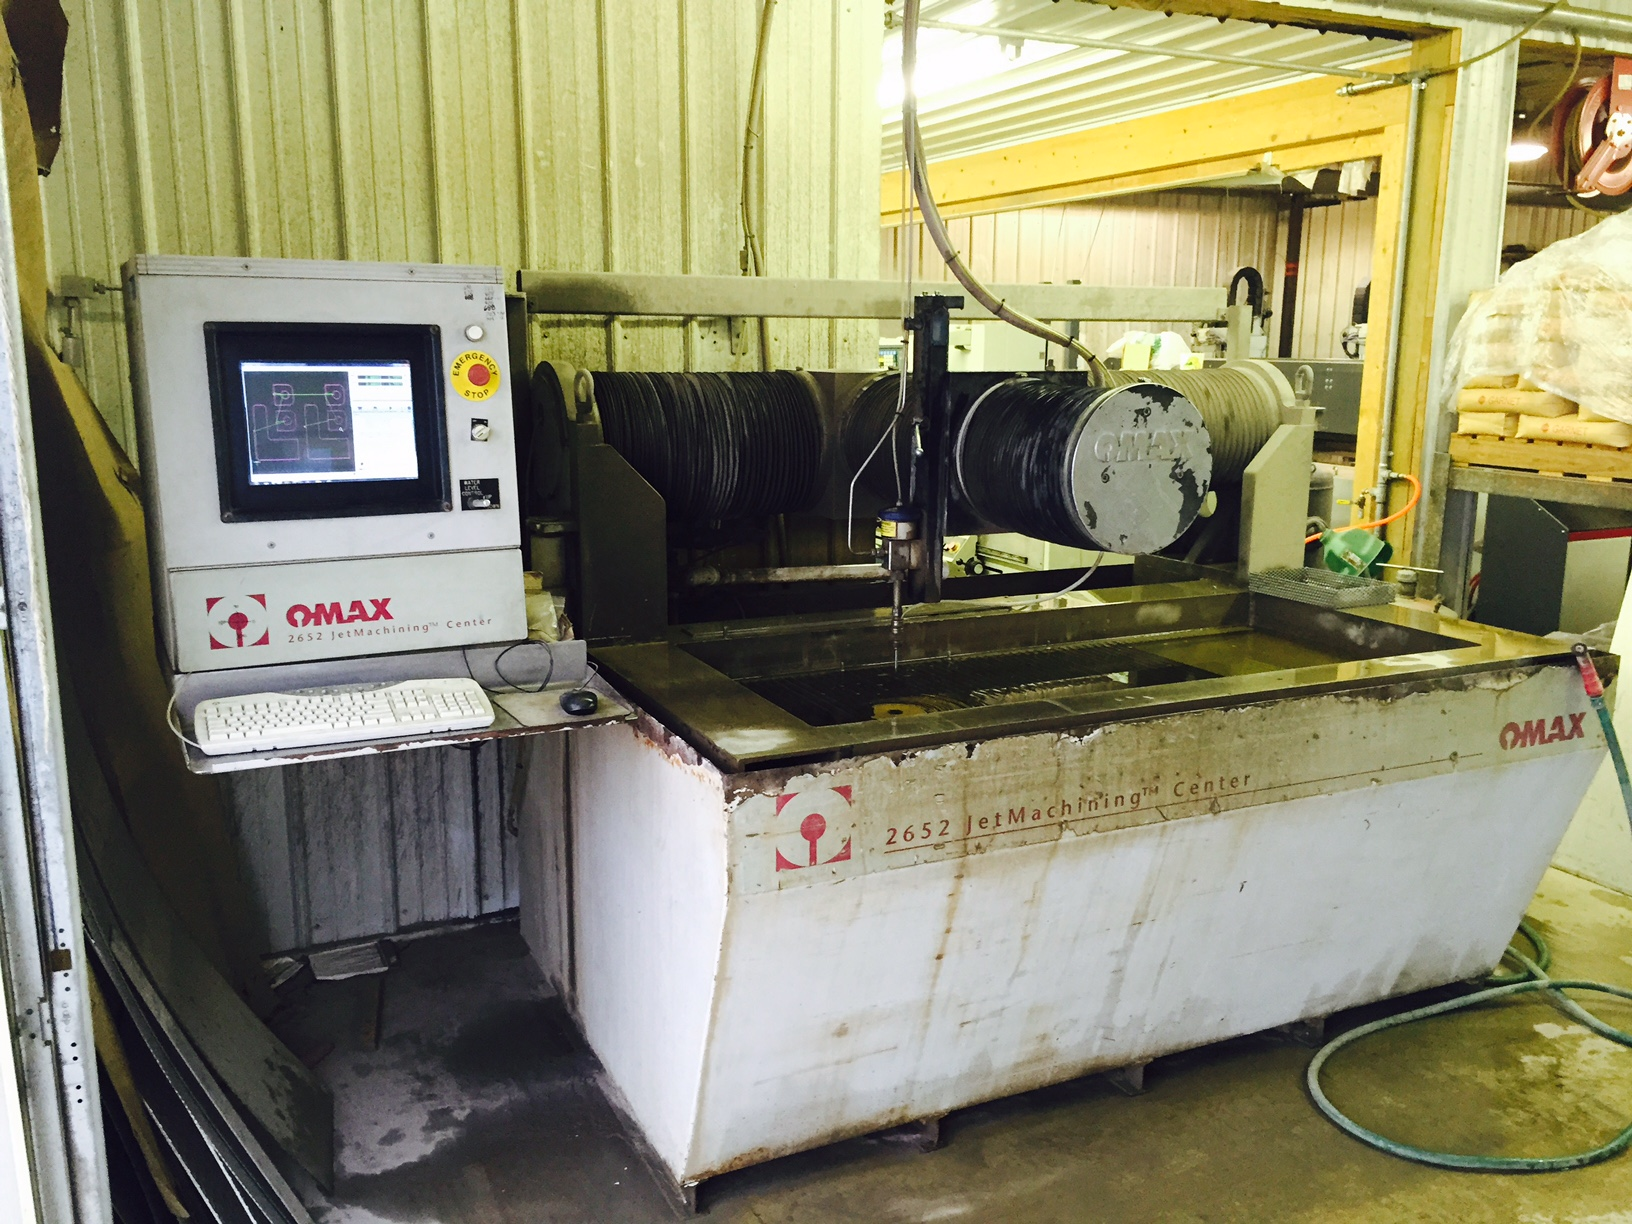 Omax 2652 Waterjet, Upgraded Computer and Drives 2011, 20 HP Intensifier